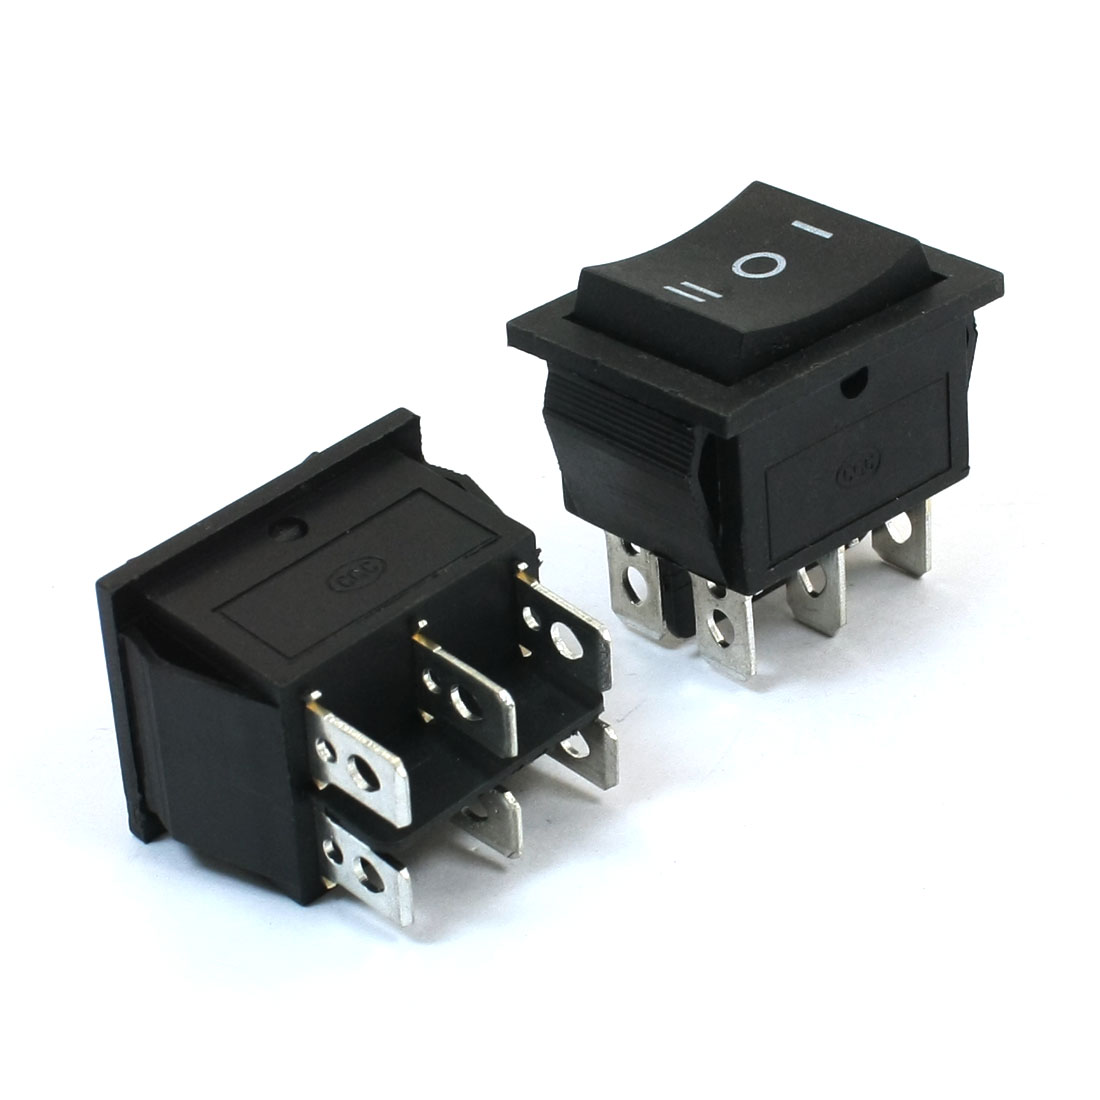 Momentay DPDT On/Off/On Panel Mount Rocker Switch 2PCS